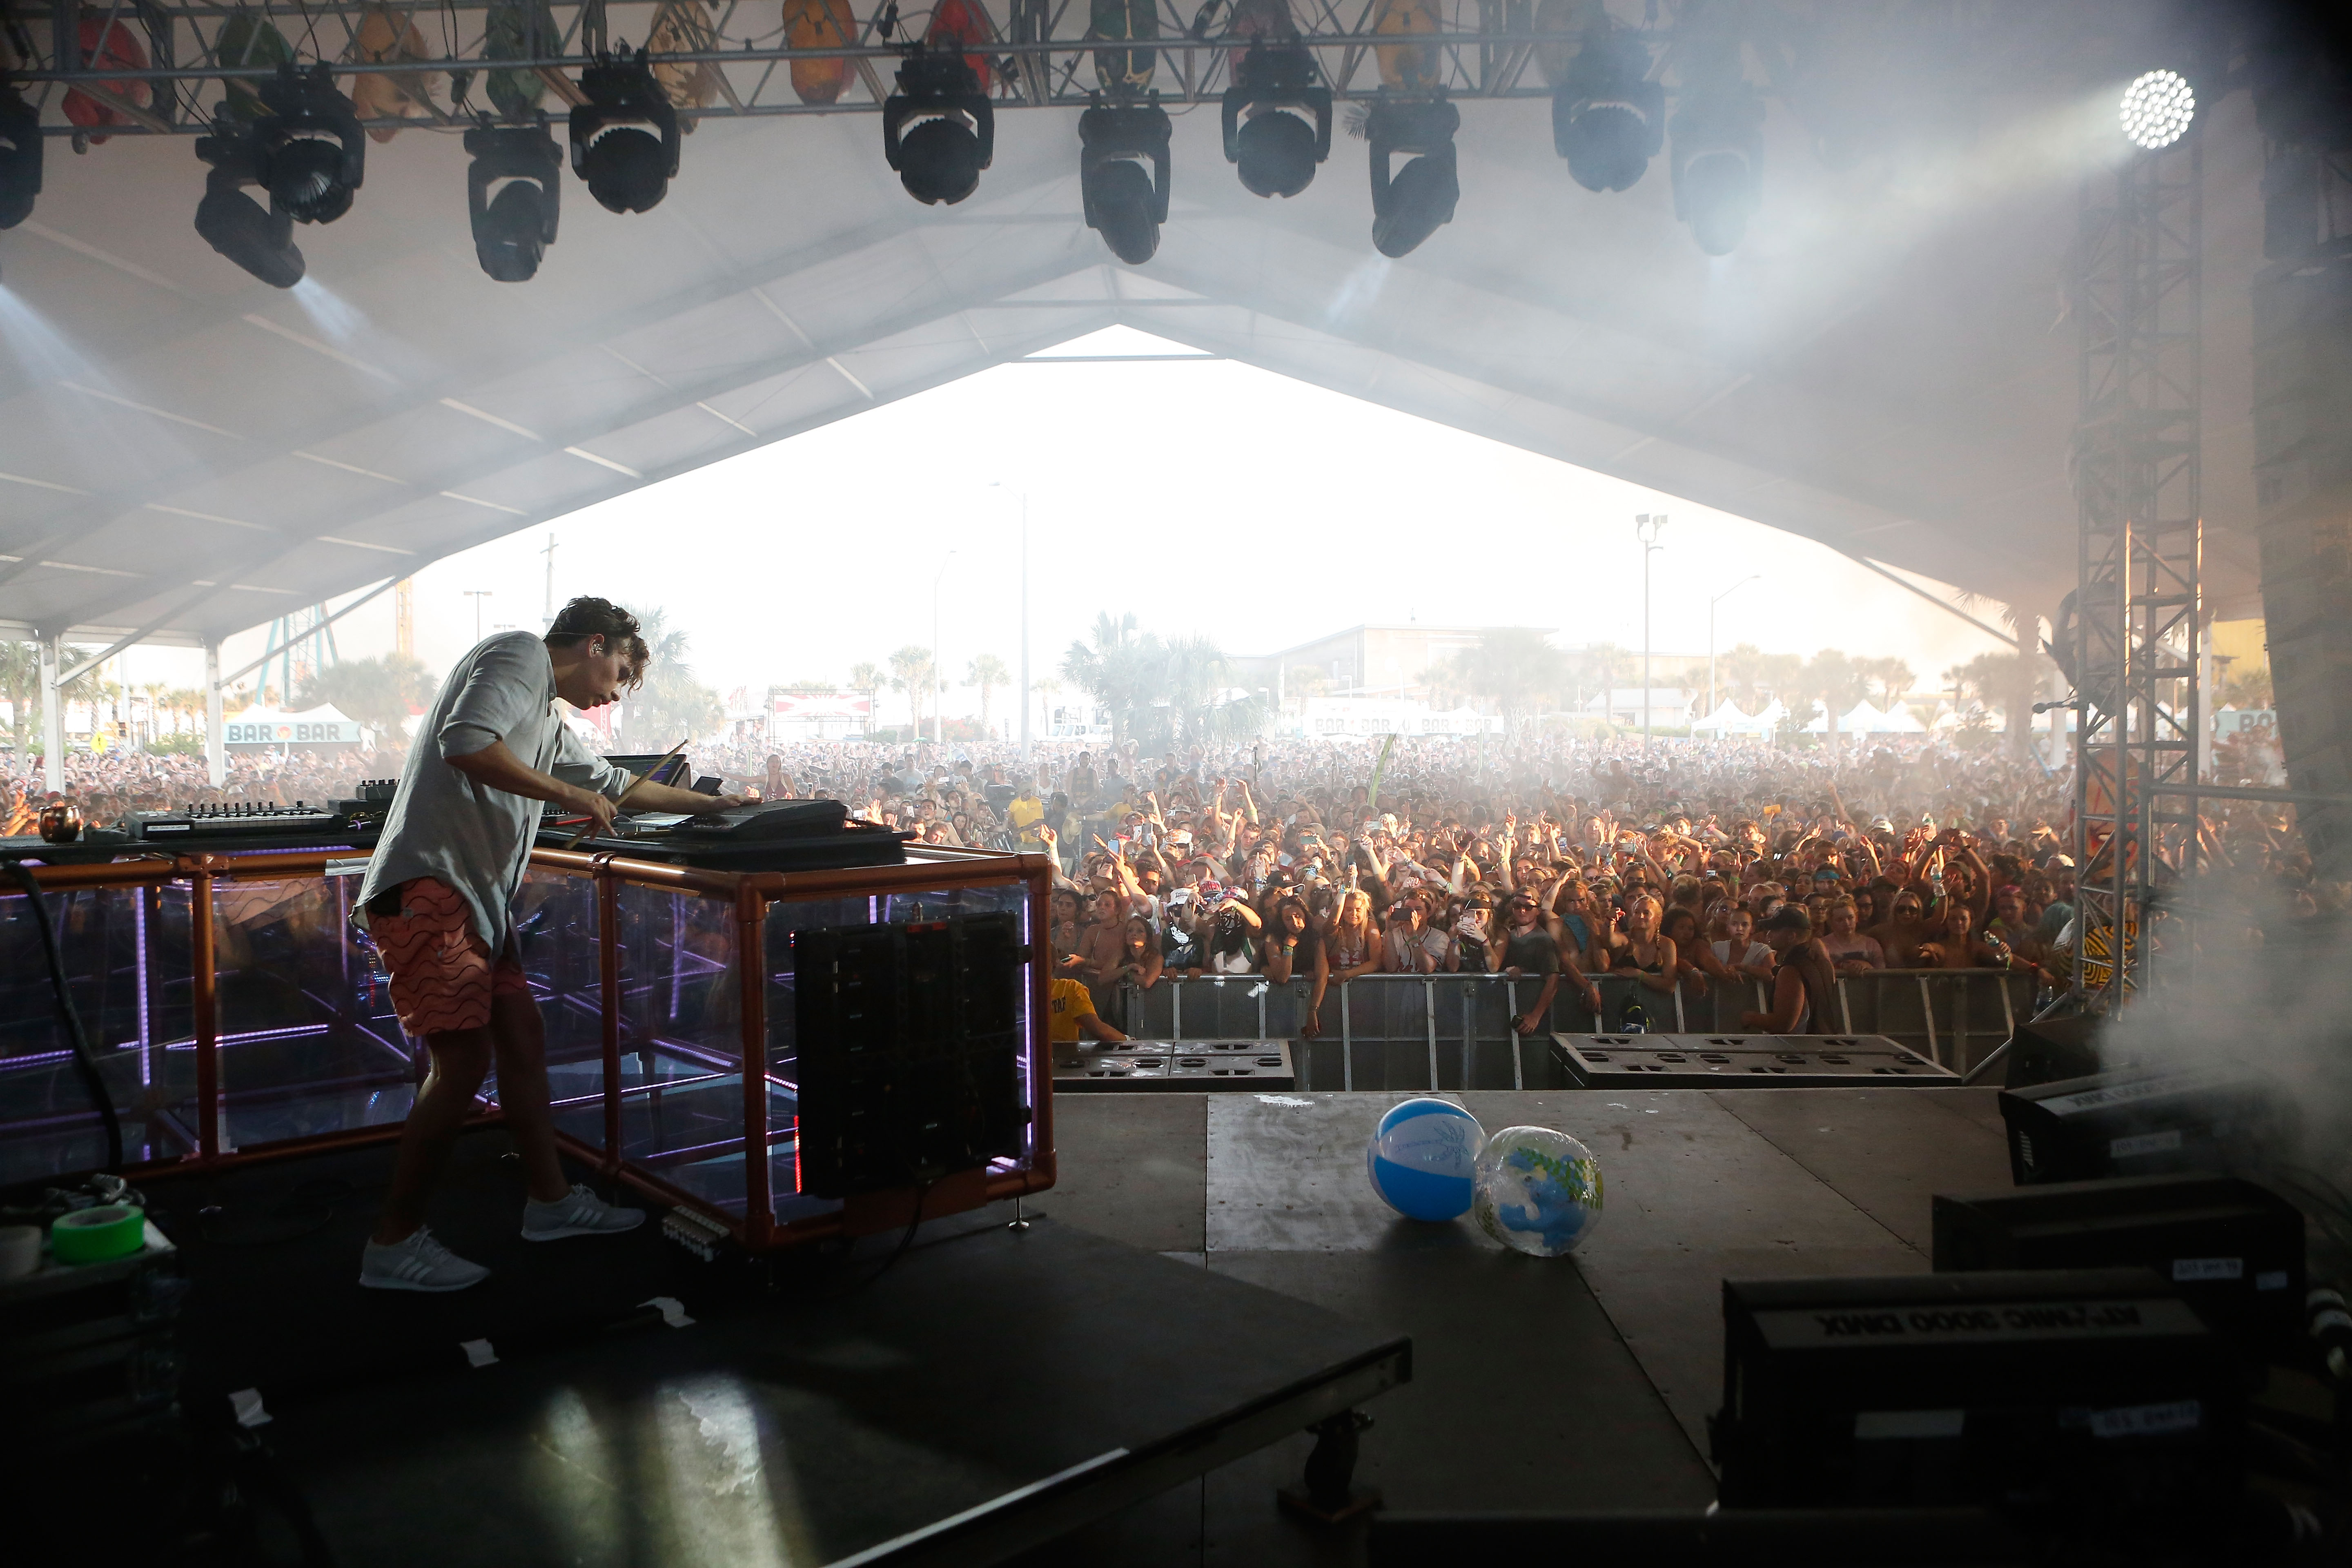 Flume performs during the 2016 Hangout Music Festival on May 22, 2016 in Gulf Shores, Alabama.